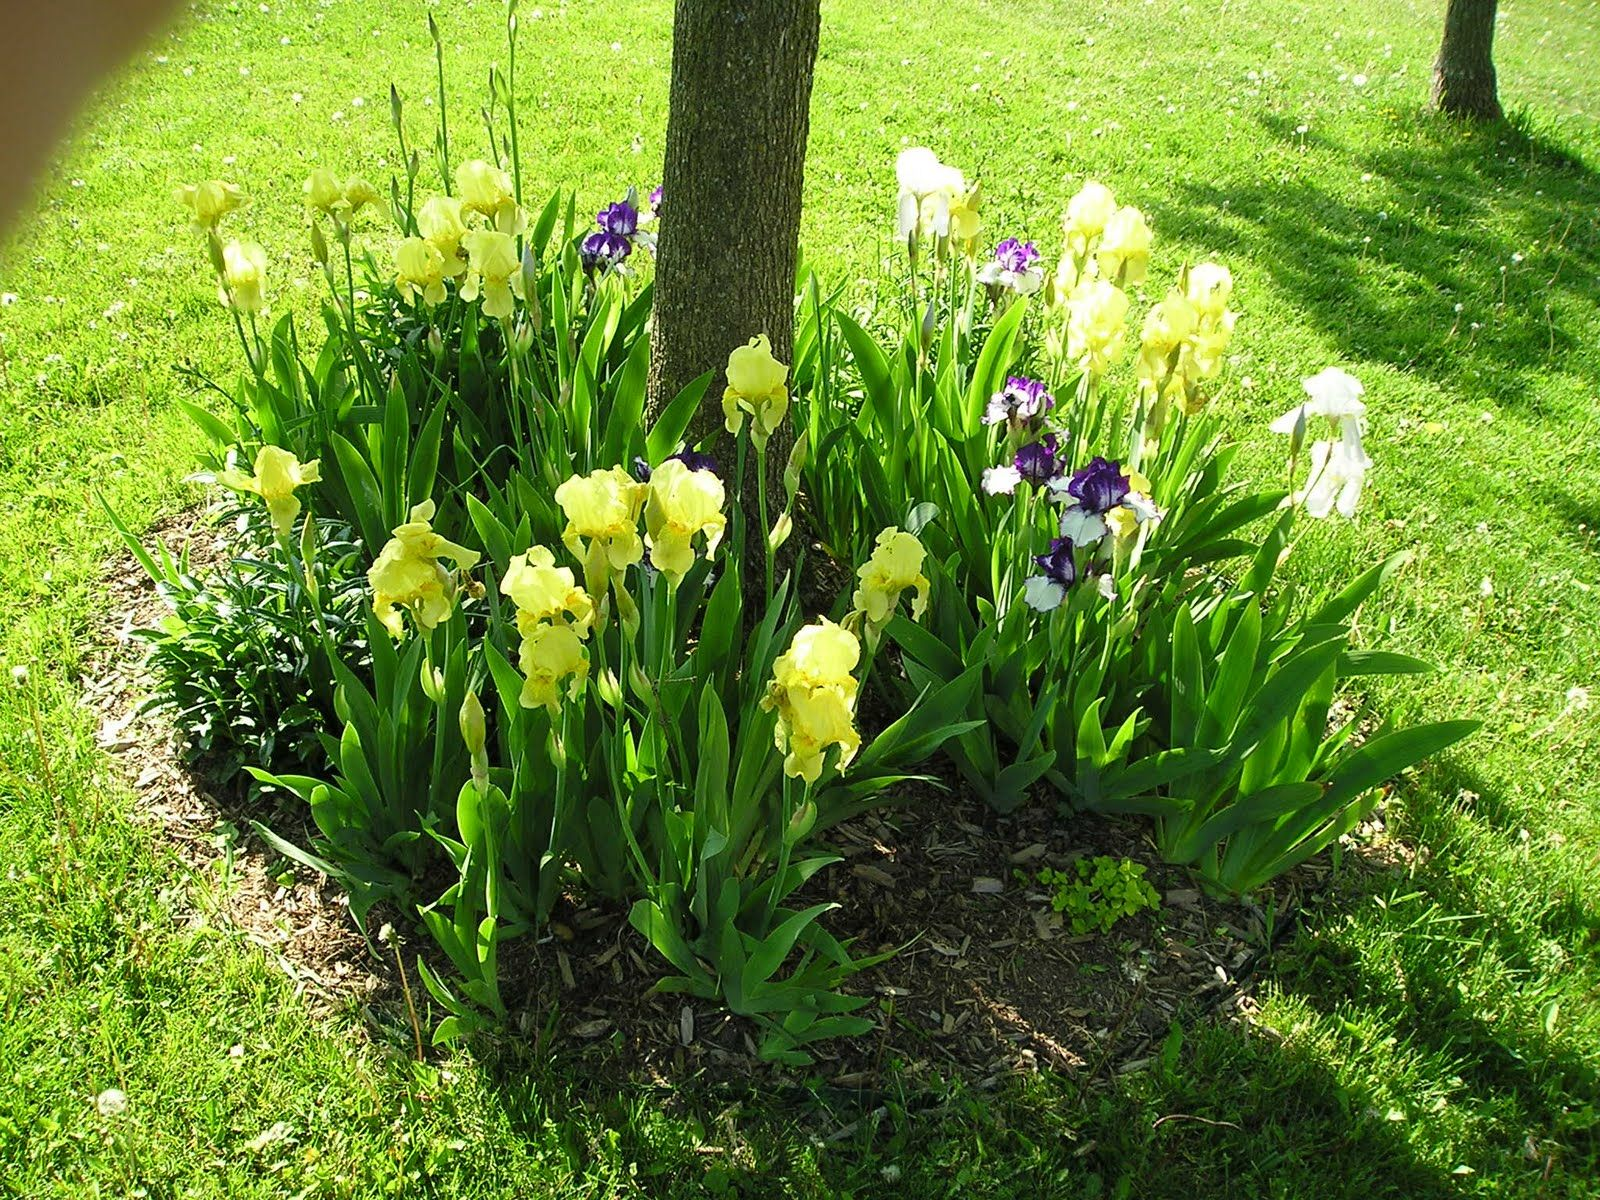 Flower Garden Ideas Around Tree landscaping around trees | landscape: flowers in the base of trees